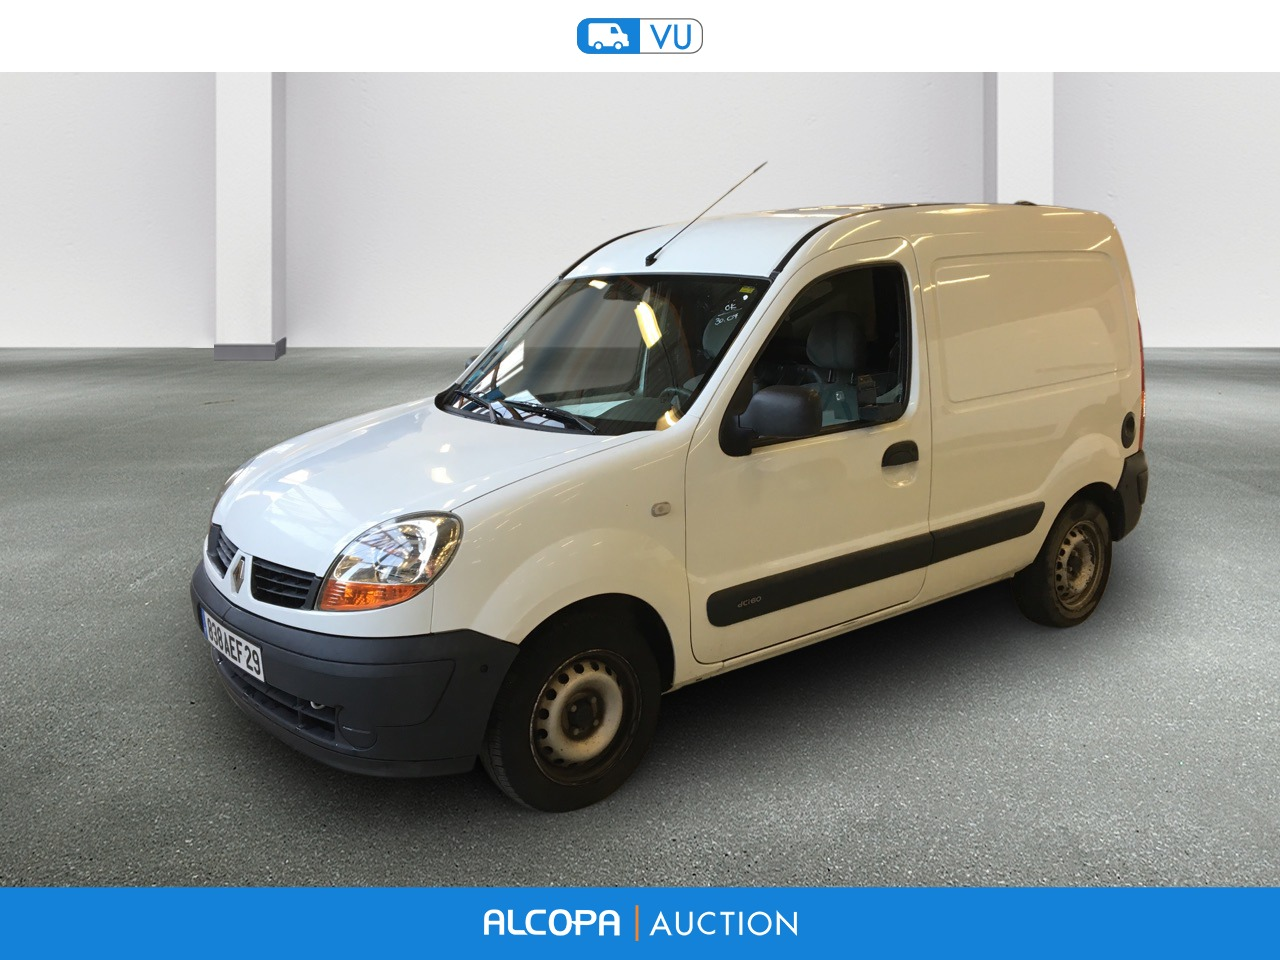 renault kangoo express kangoo express 1 5 dci 60 alcopa auction. Black Bedroom Furniture Sets. Home Design Ideas